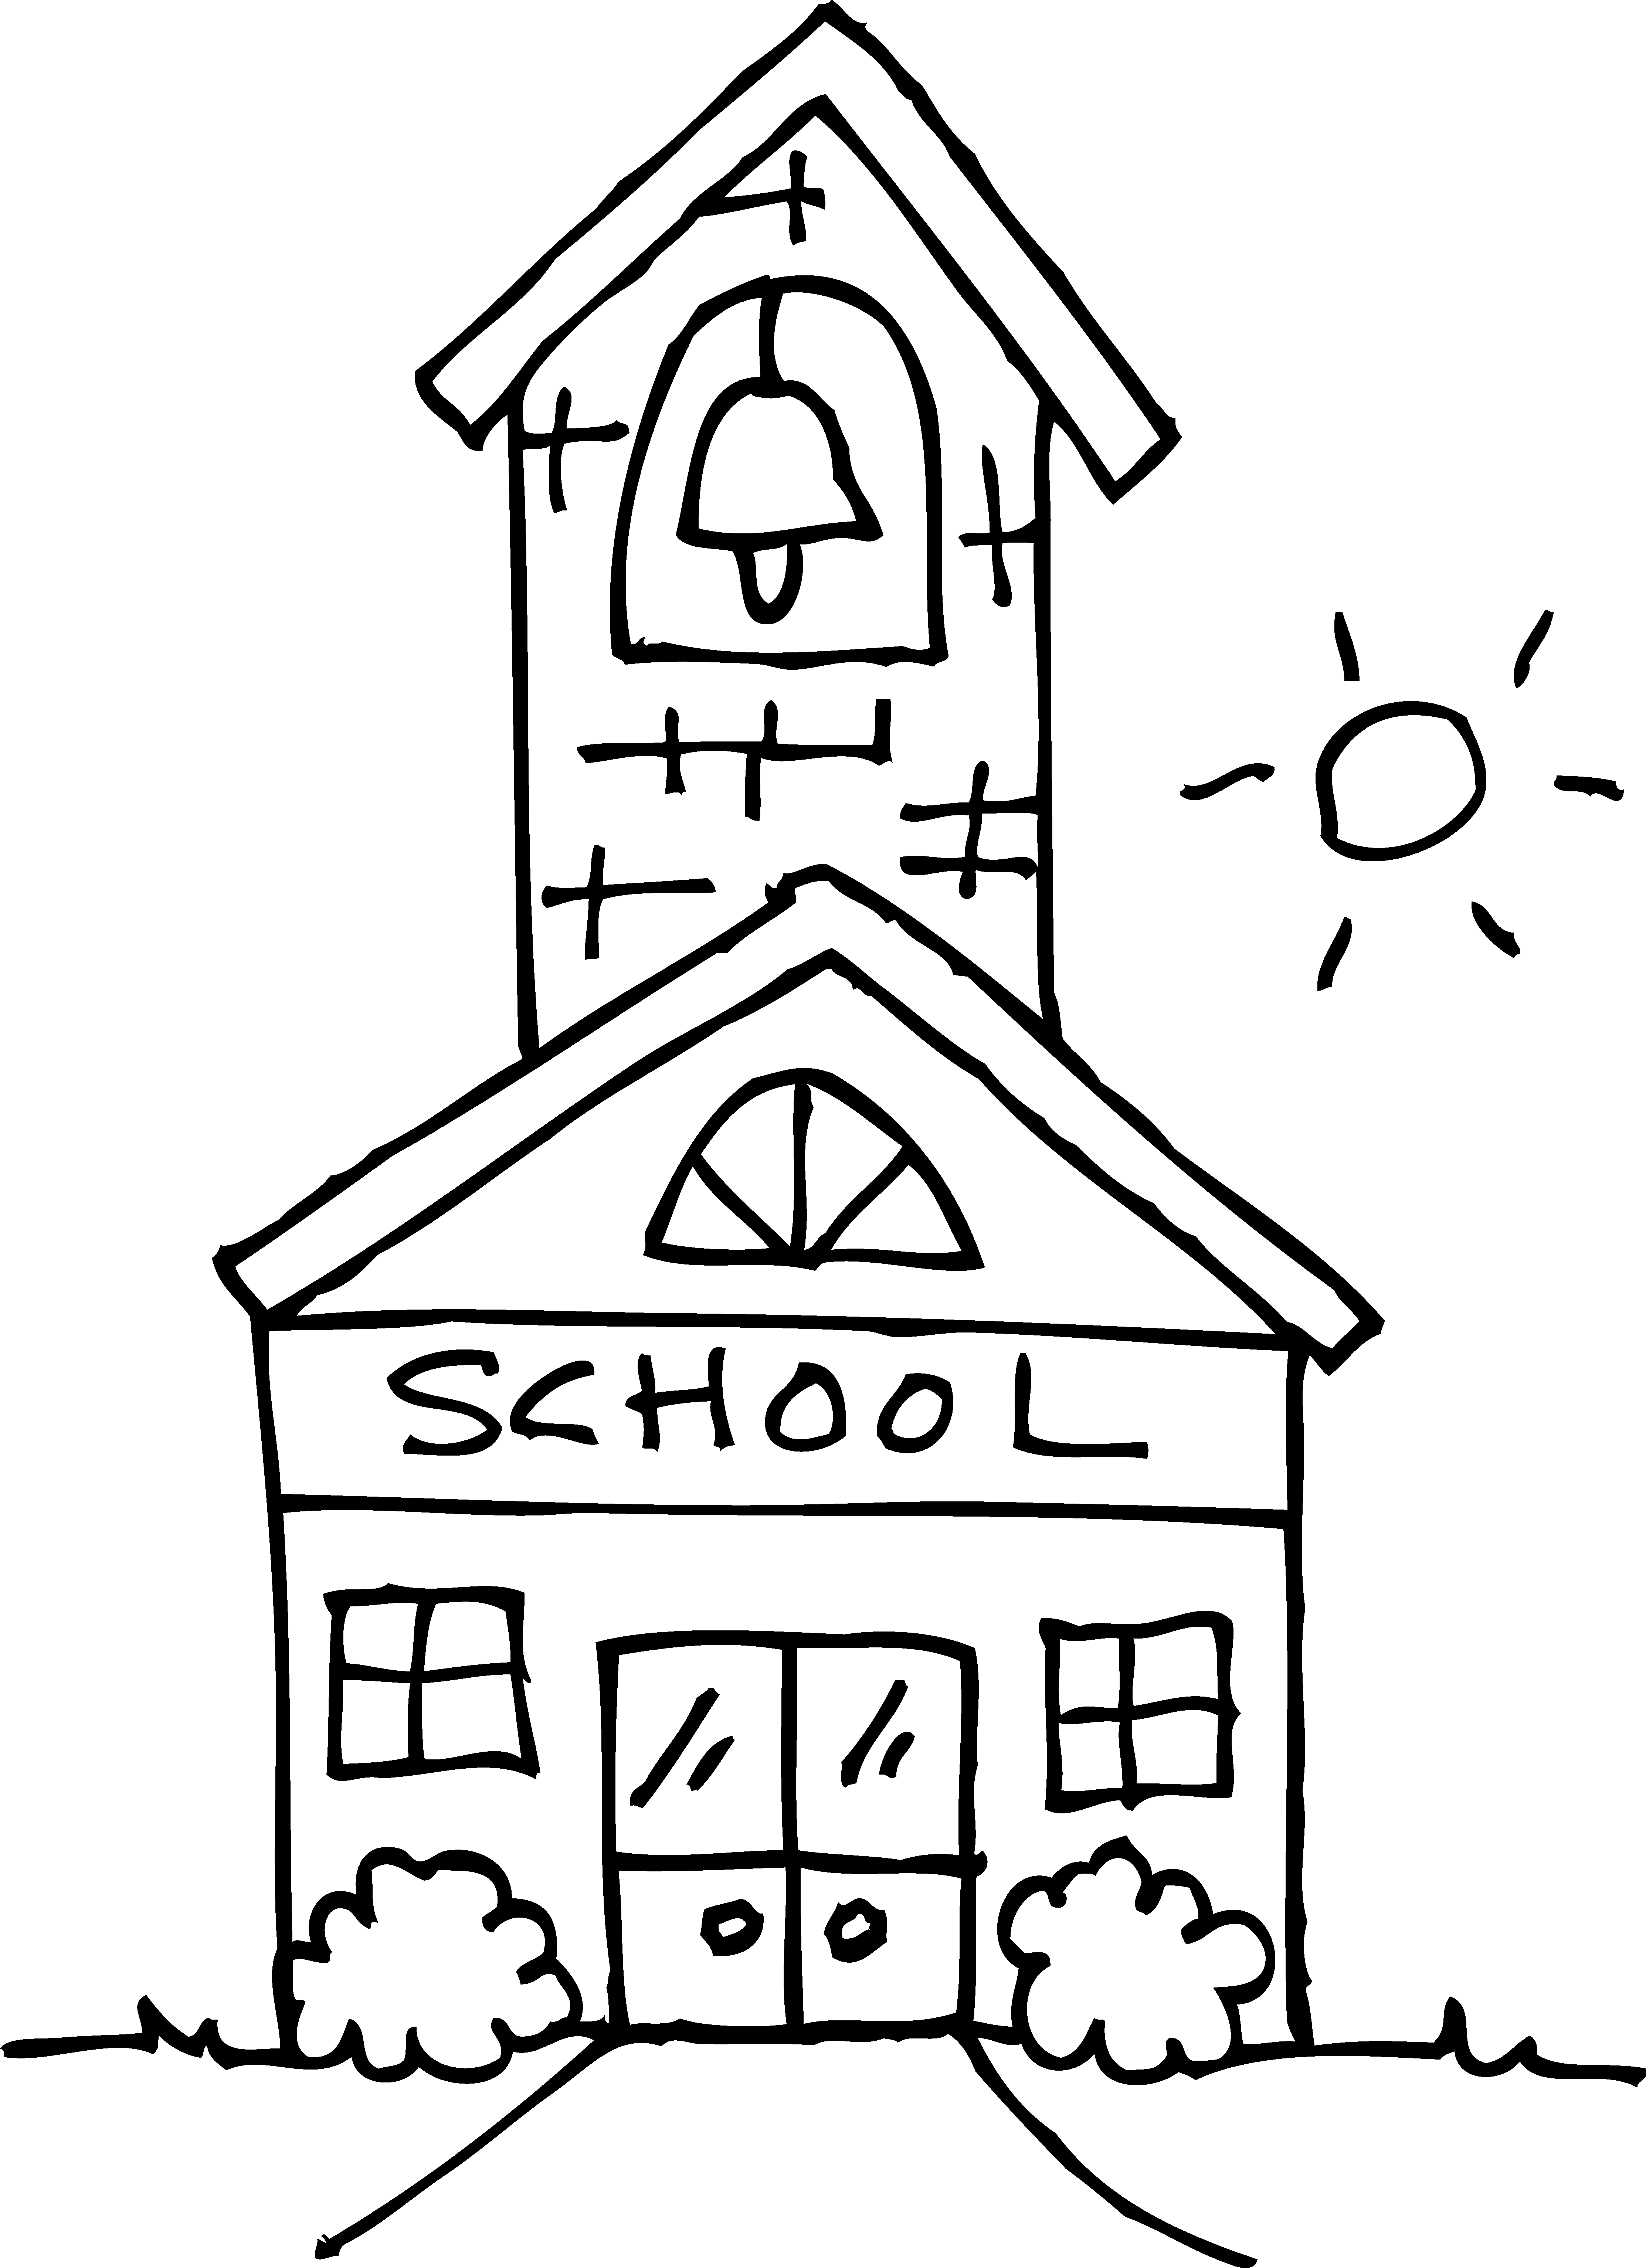 School House Coloring Page : school, house, coloring, Download, Schoolhouse, Coloring, School, Clipart, Black, White, Image, Background, PNGkey.com